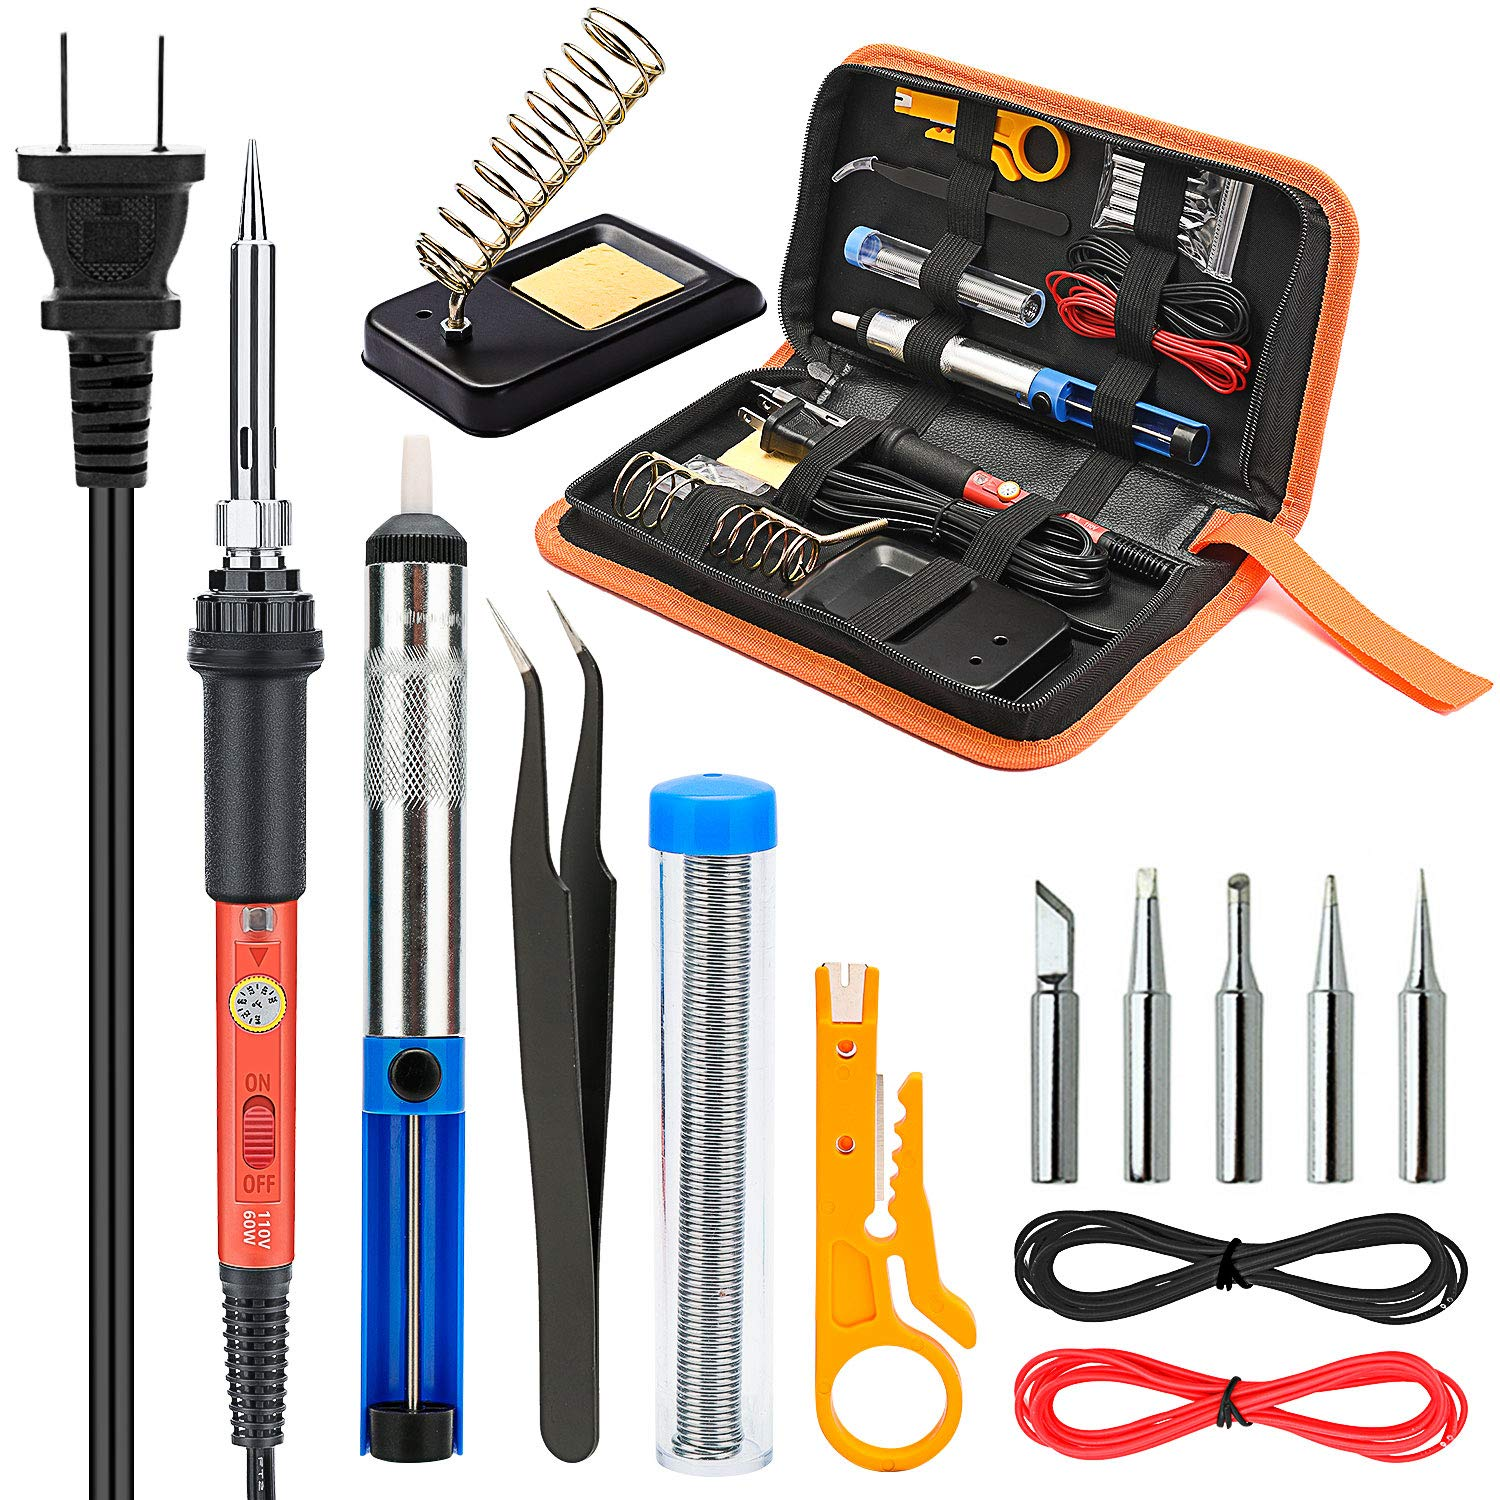 Soldering Iron Kit Electronics, Yome 14-in-1 60w Adjustable Temperature Soldering Iron with ON/OFF Switch, 5pcs Soldering Iron Tips, Desoldering Pump, Tweezers, Stand, Solder, PU Carry Bag by Yome